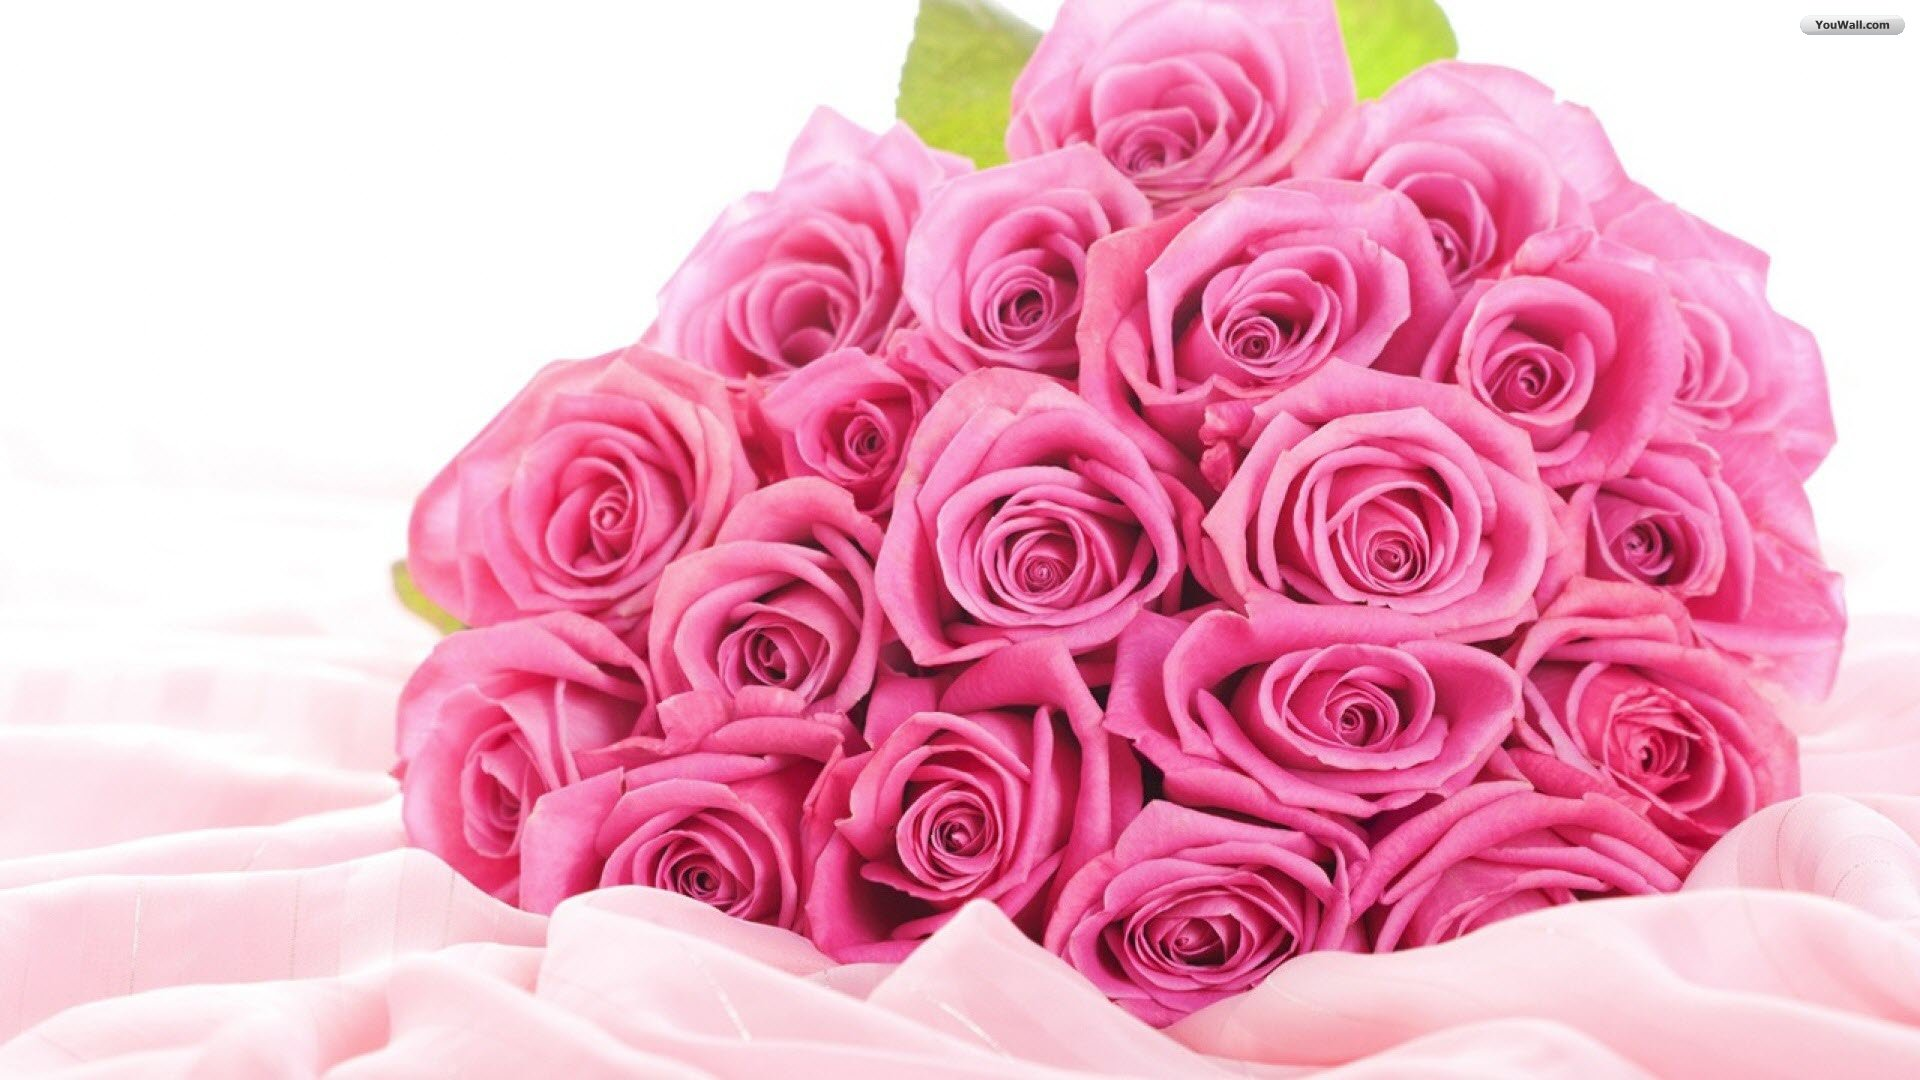 Free images of valentine flowers clip valentine's day flowers pictures clip